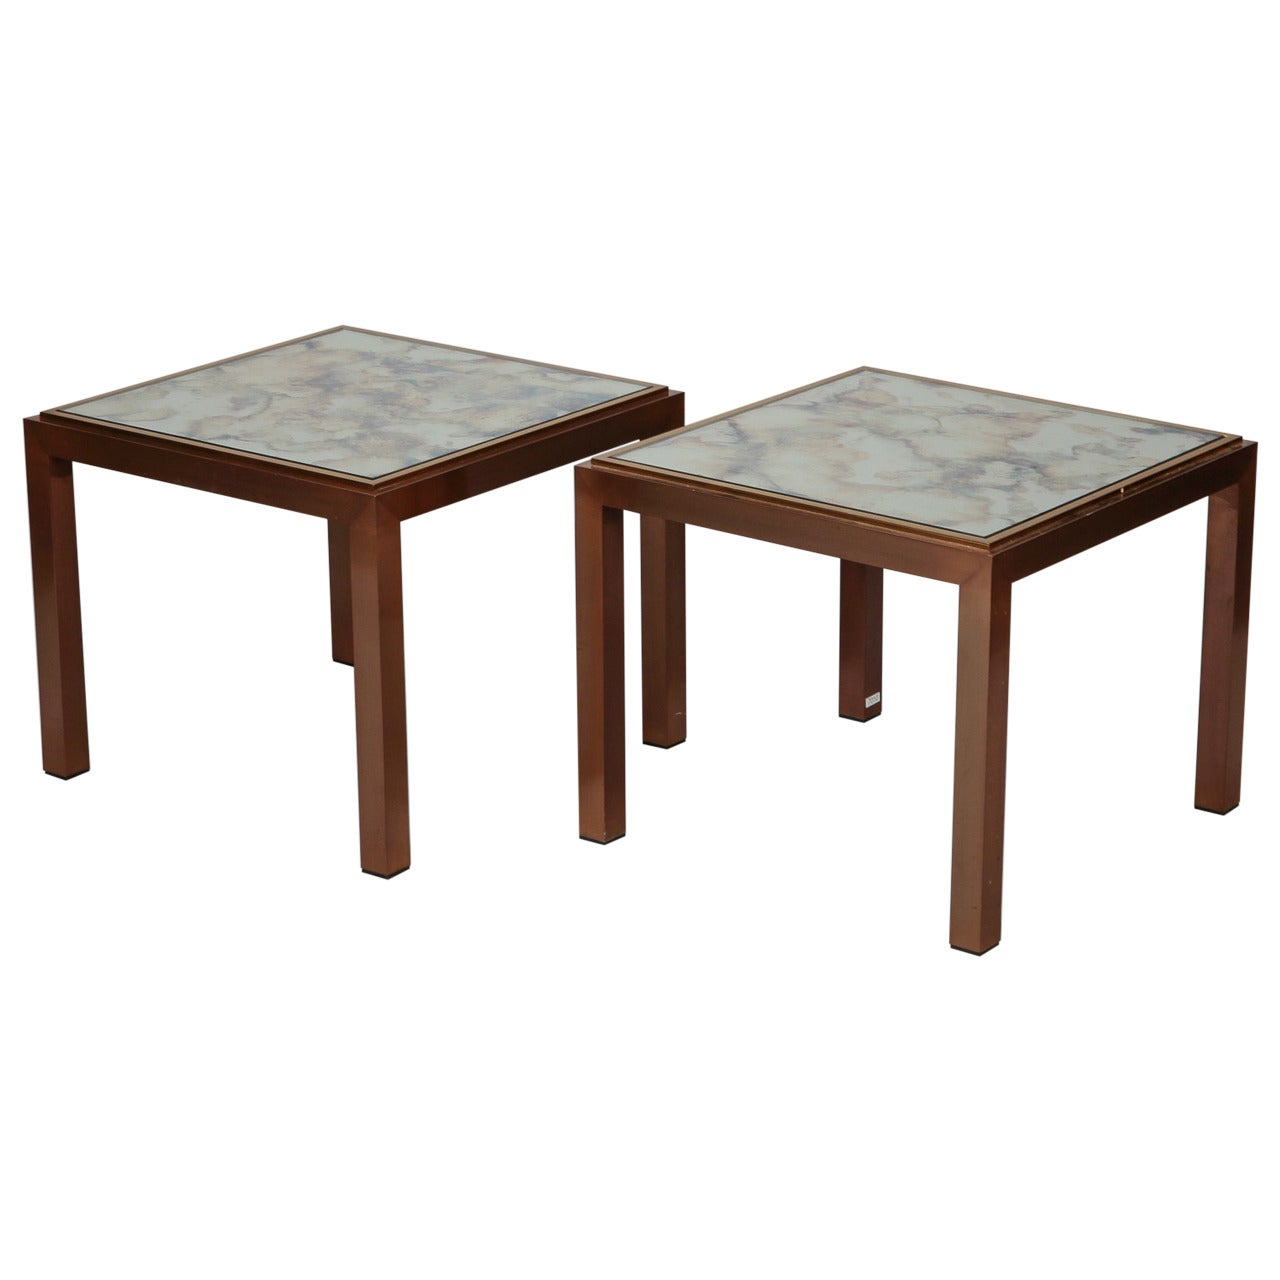 Pair of Square Bronze Metal End Tables with Marbelized Mirror Tops